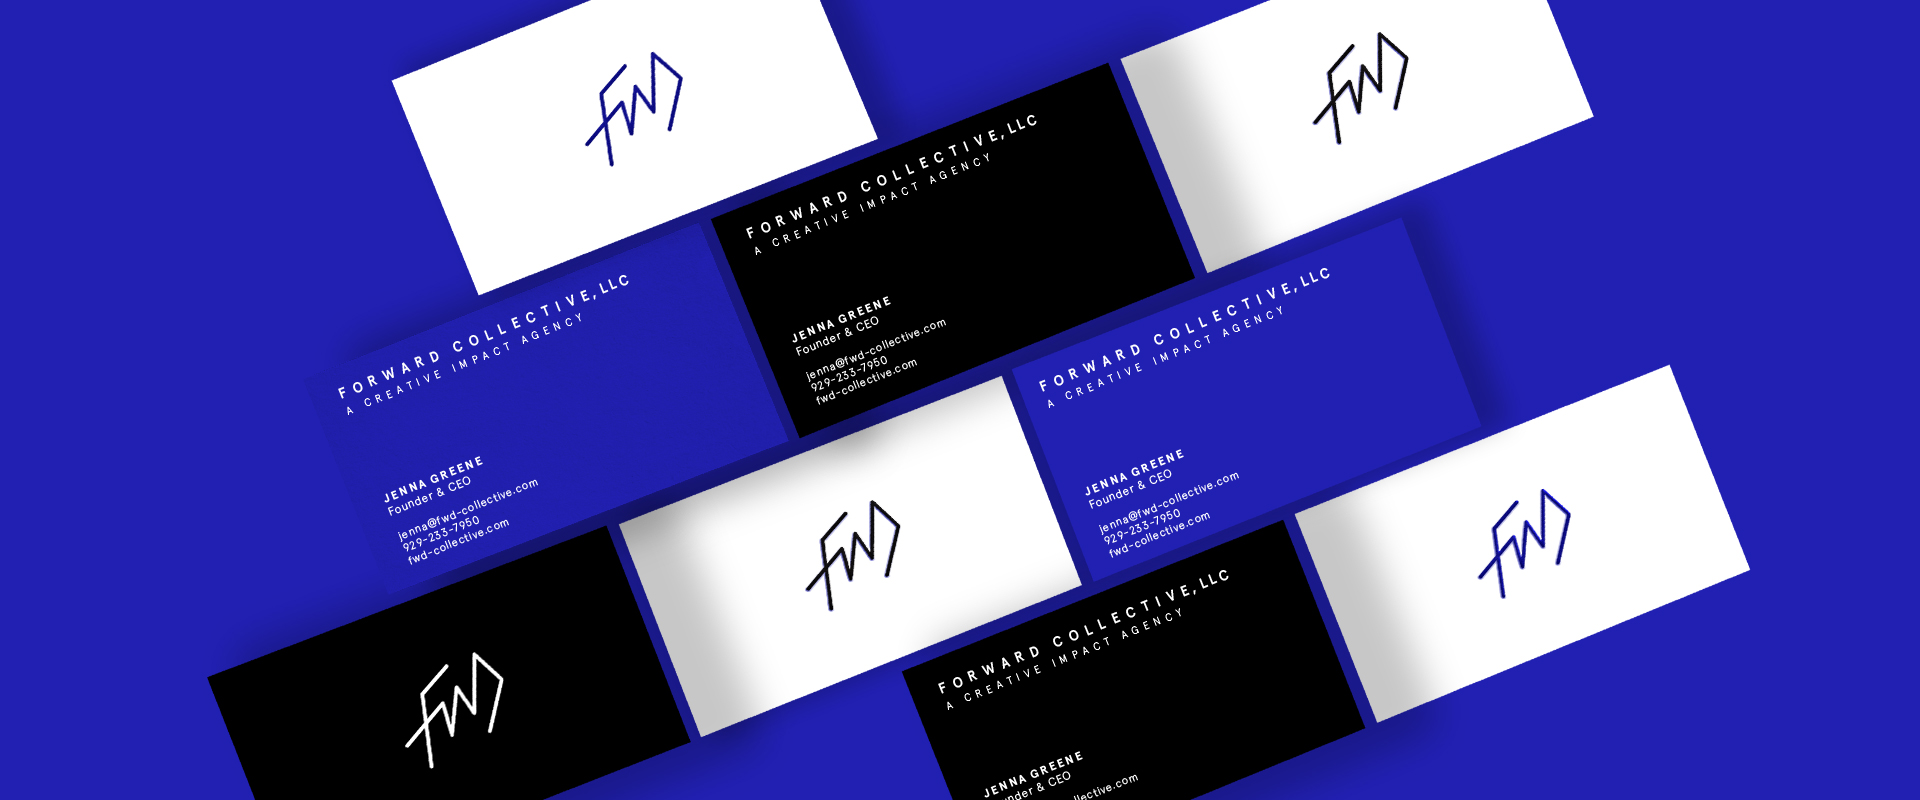 02_FWDCollective_BusinessCards_LindseyKuglerGraphicDesign.jpg